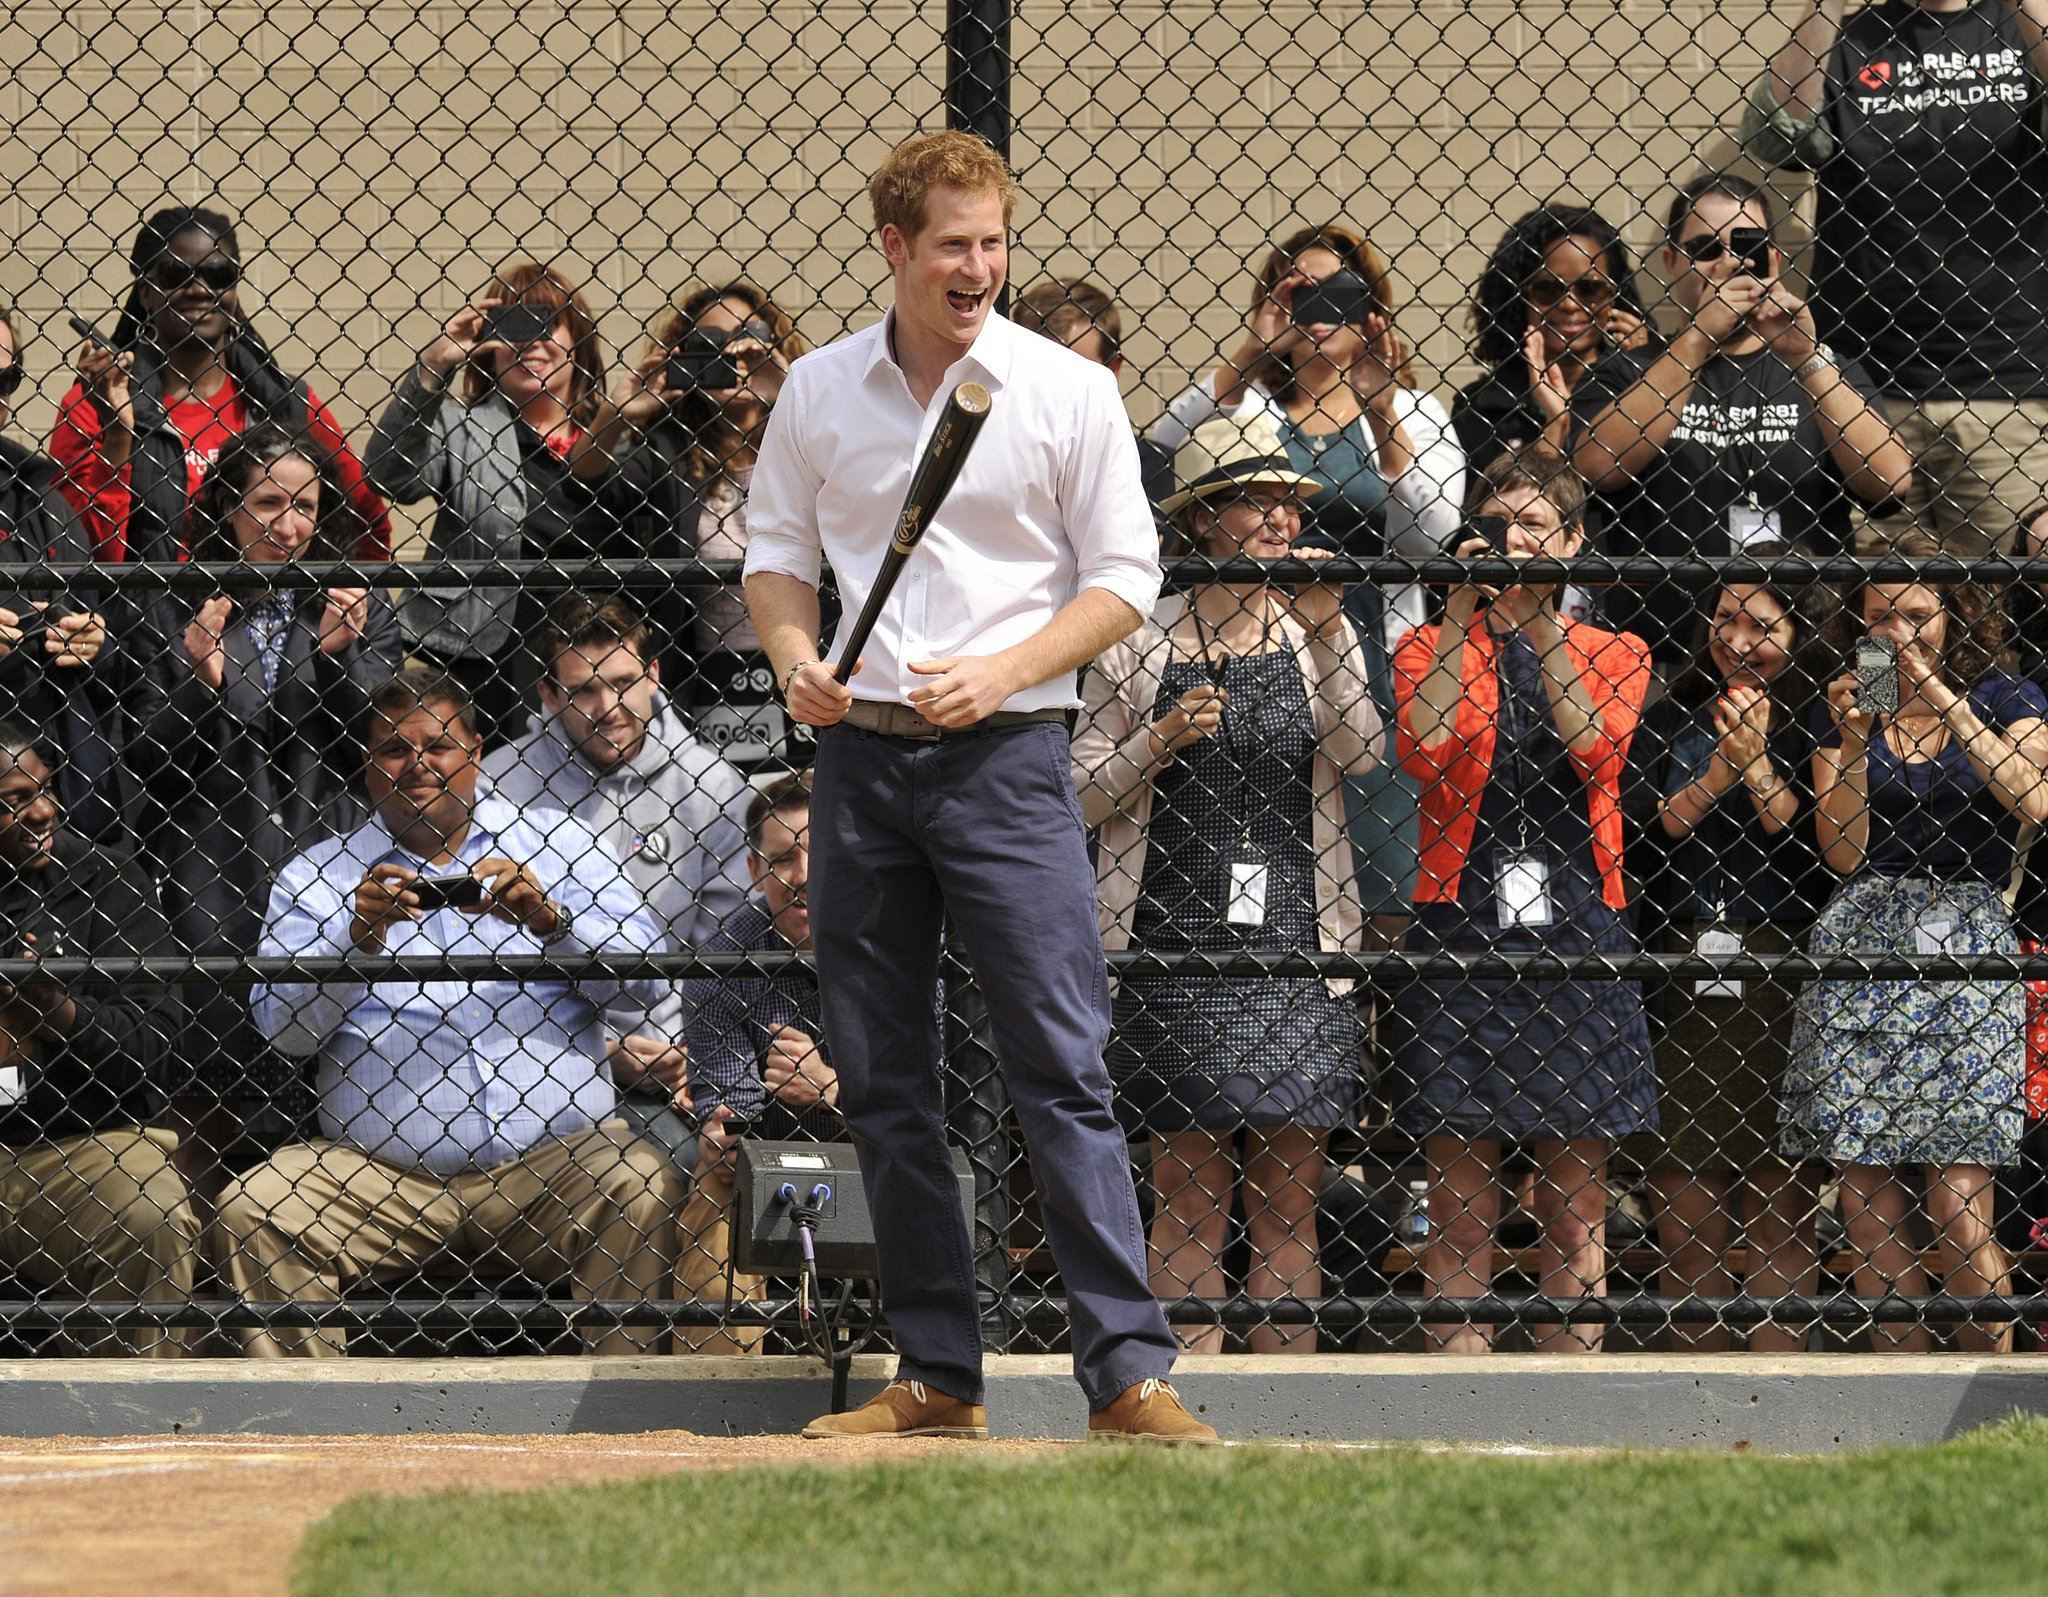 A group of fans watched Prince Harry while he tried his hand at baseball in NYC's Harlem neighborhood in May 2013.